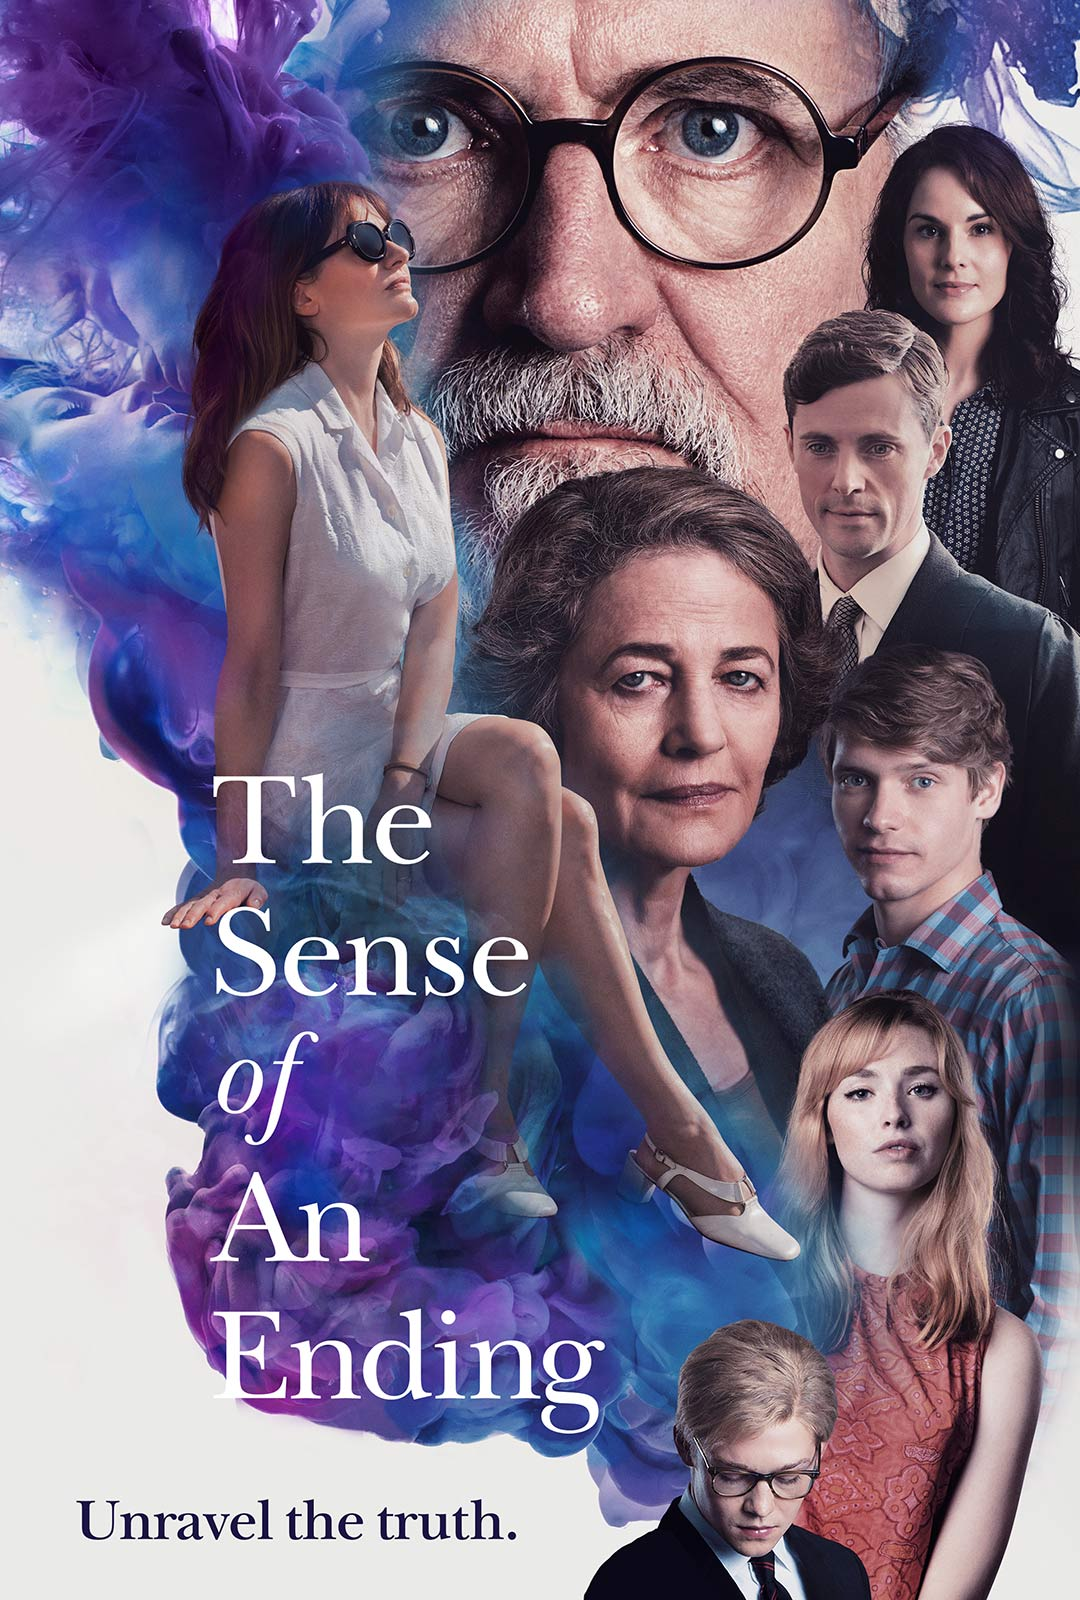 https://cdn.traileraddict.com/content/cbs-films/the-sense-of-an-ending.jpg